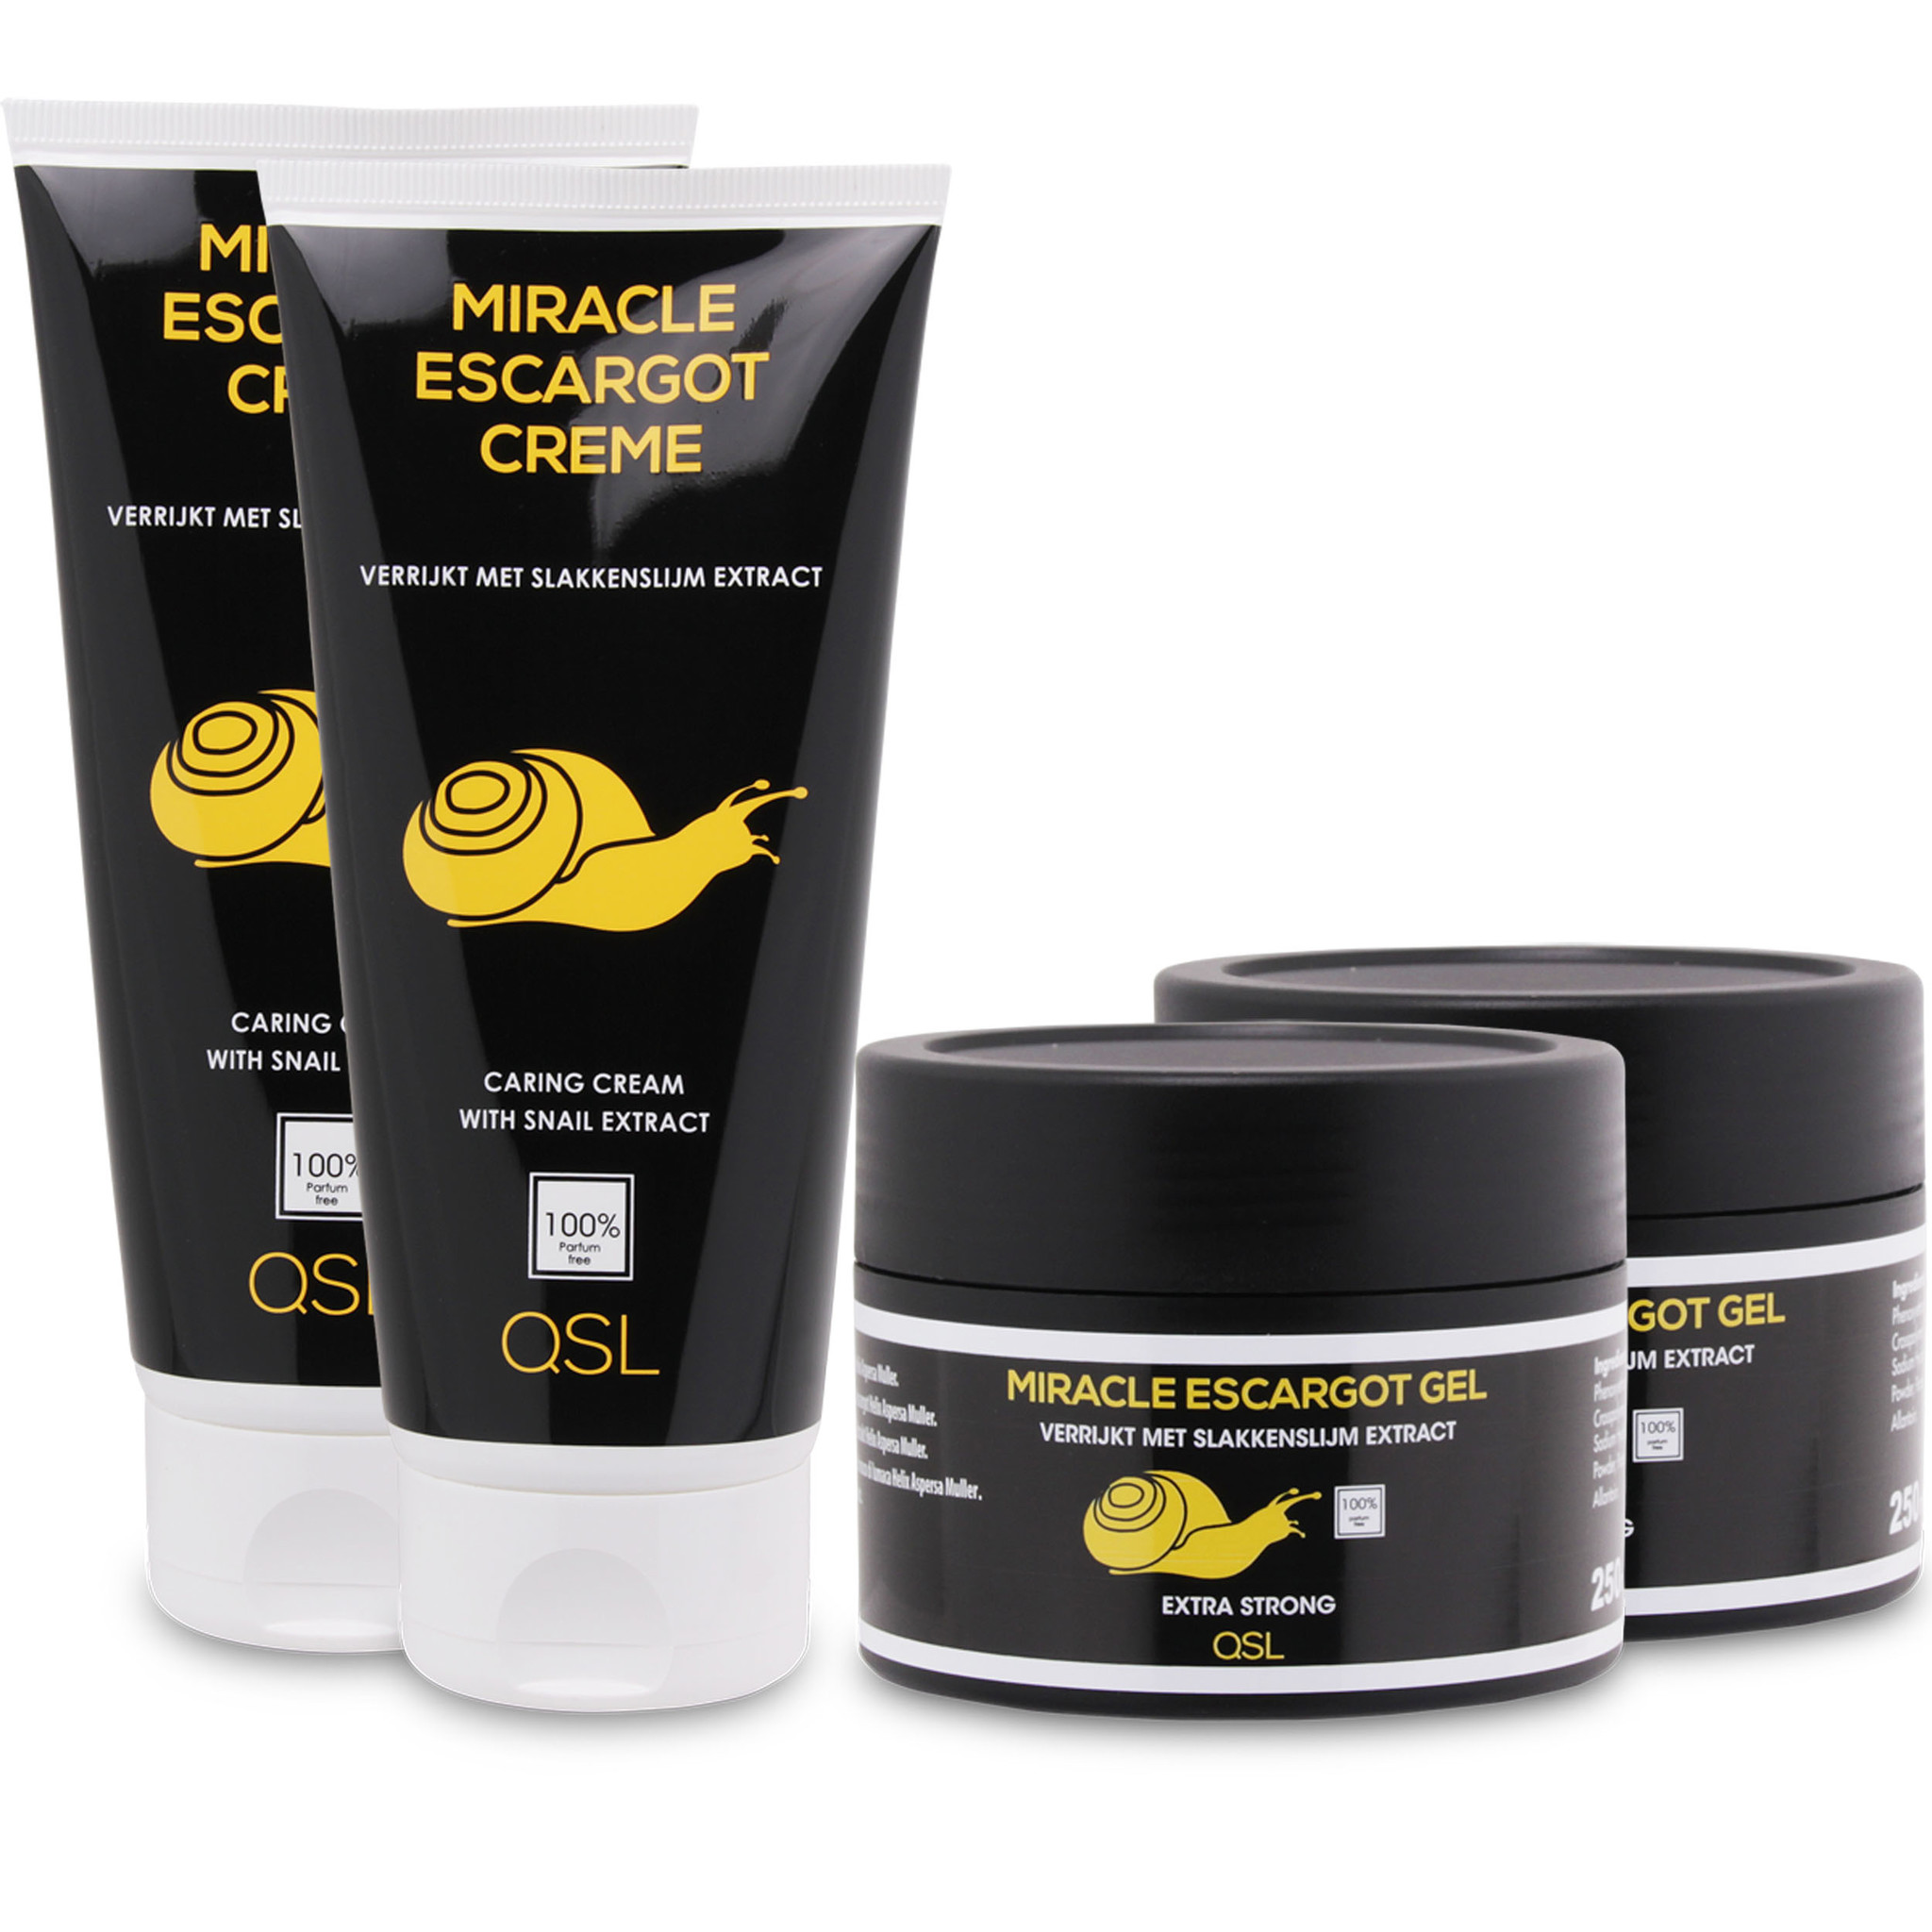 Miracle Escargot Offre combinée | 2x Miracle Escargot Creme 200ml + 2x Miracle Escargot Gel 250ml